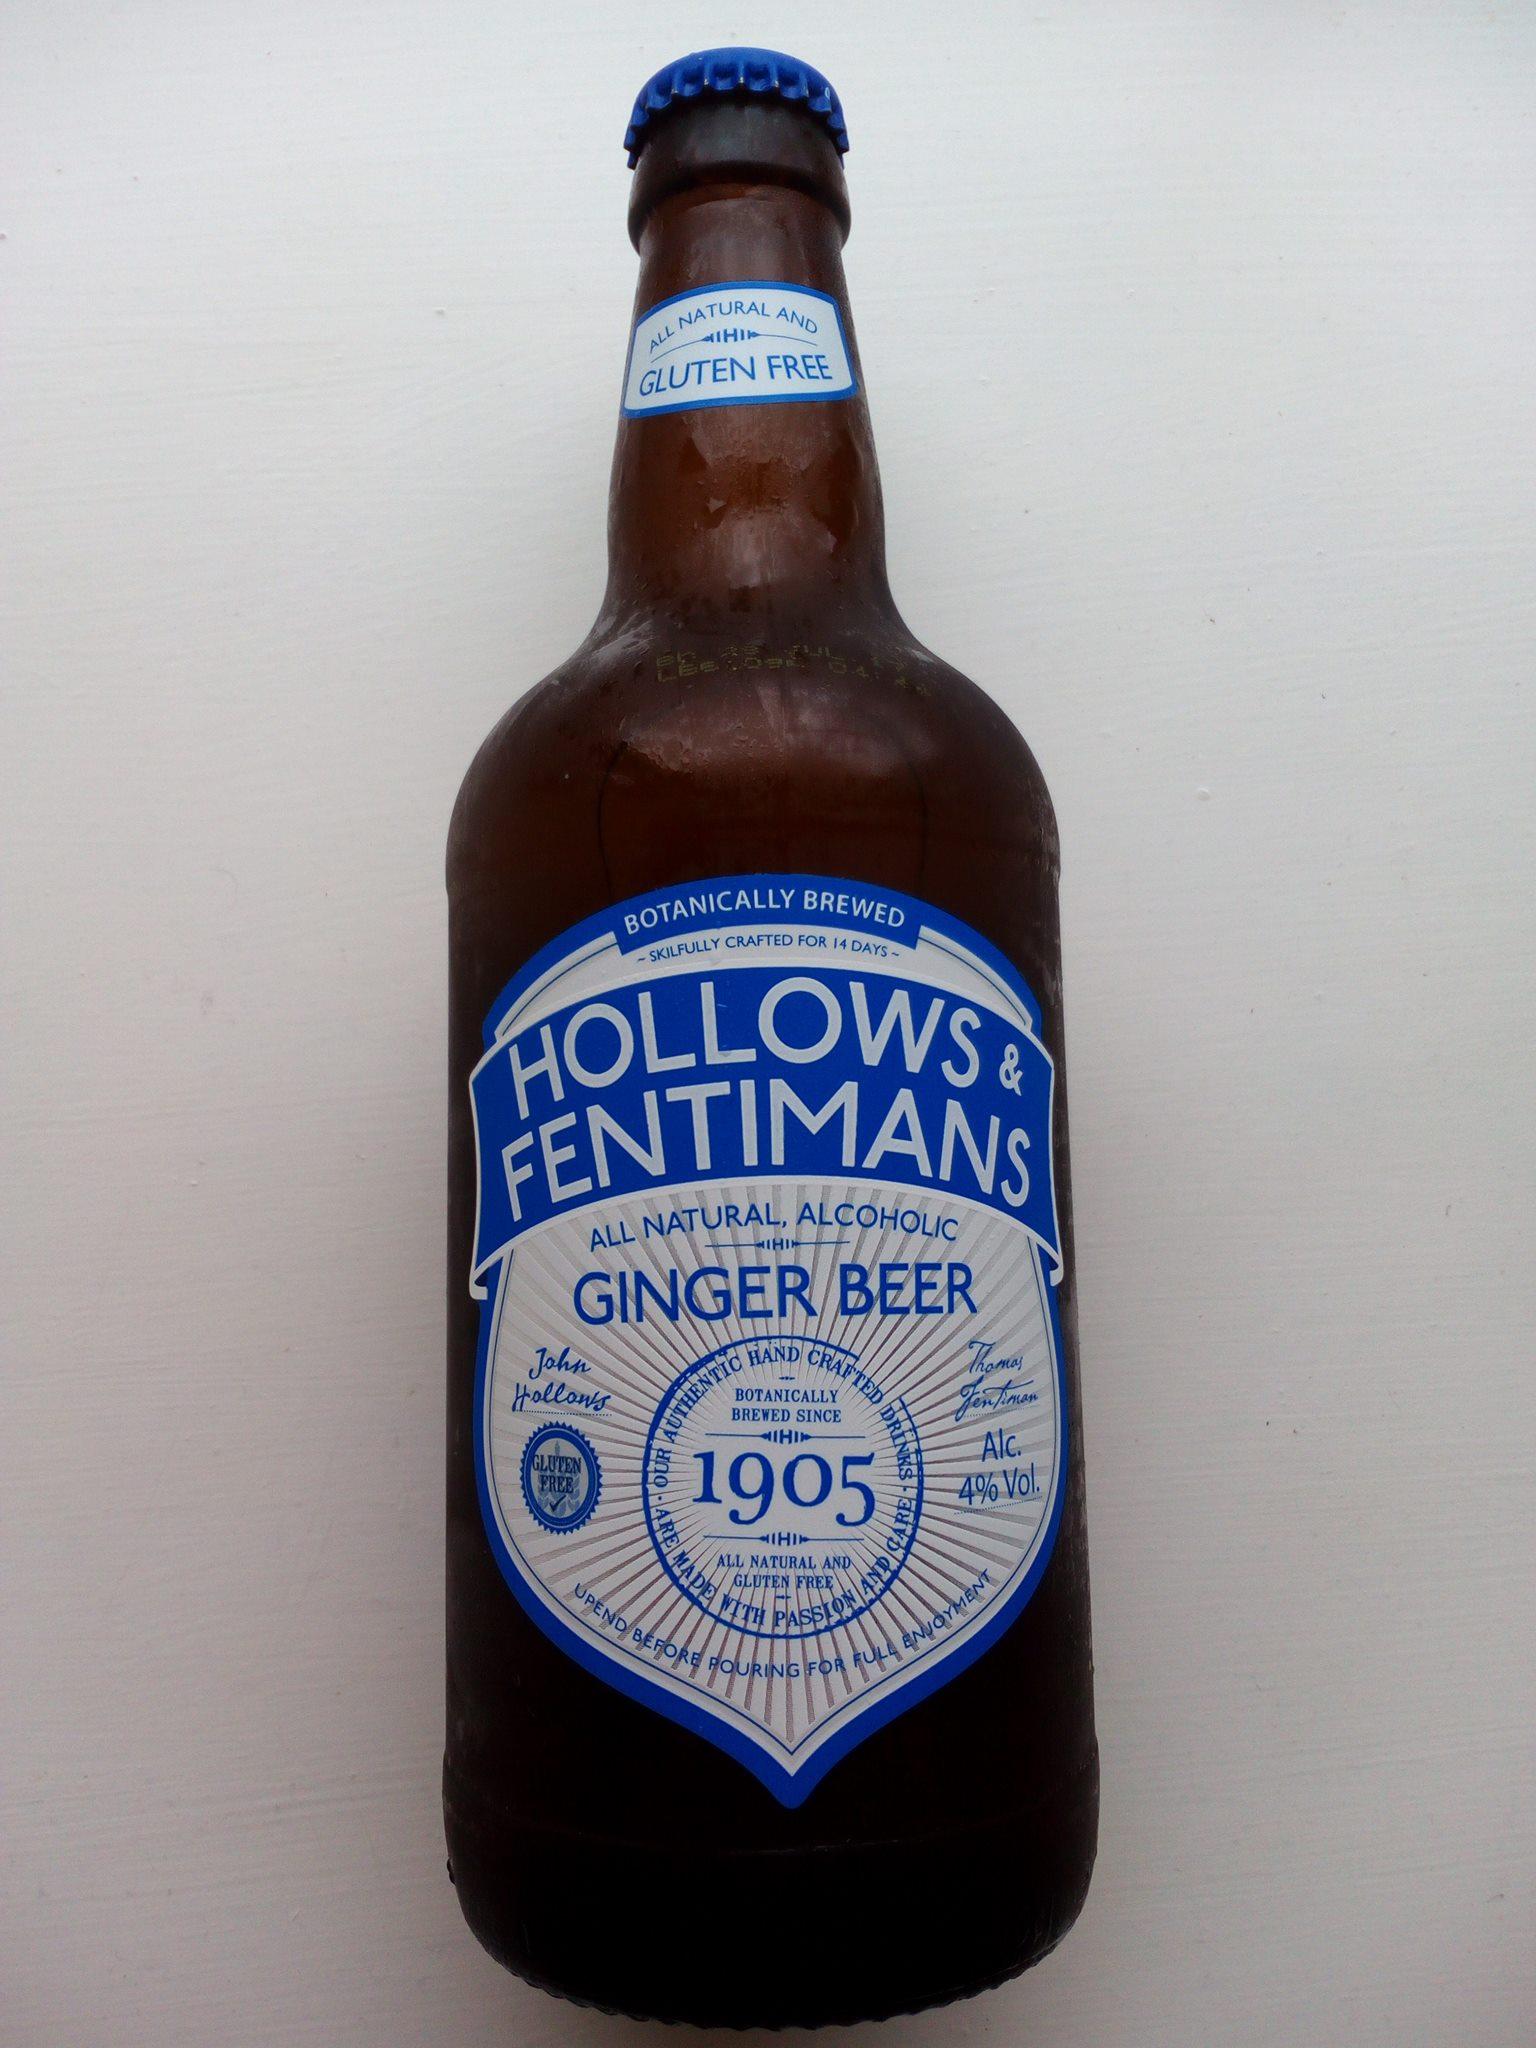 Hollows & Fentiman's Alcoholic Ginger Beer